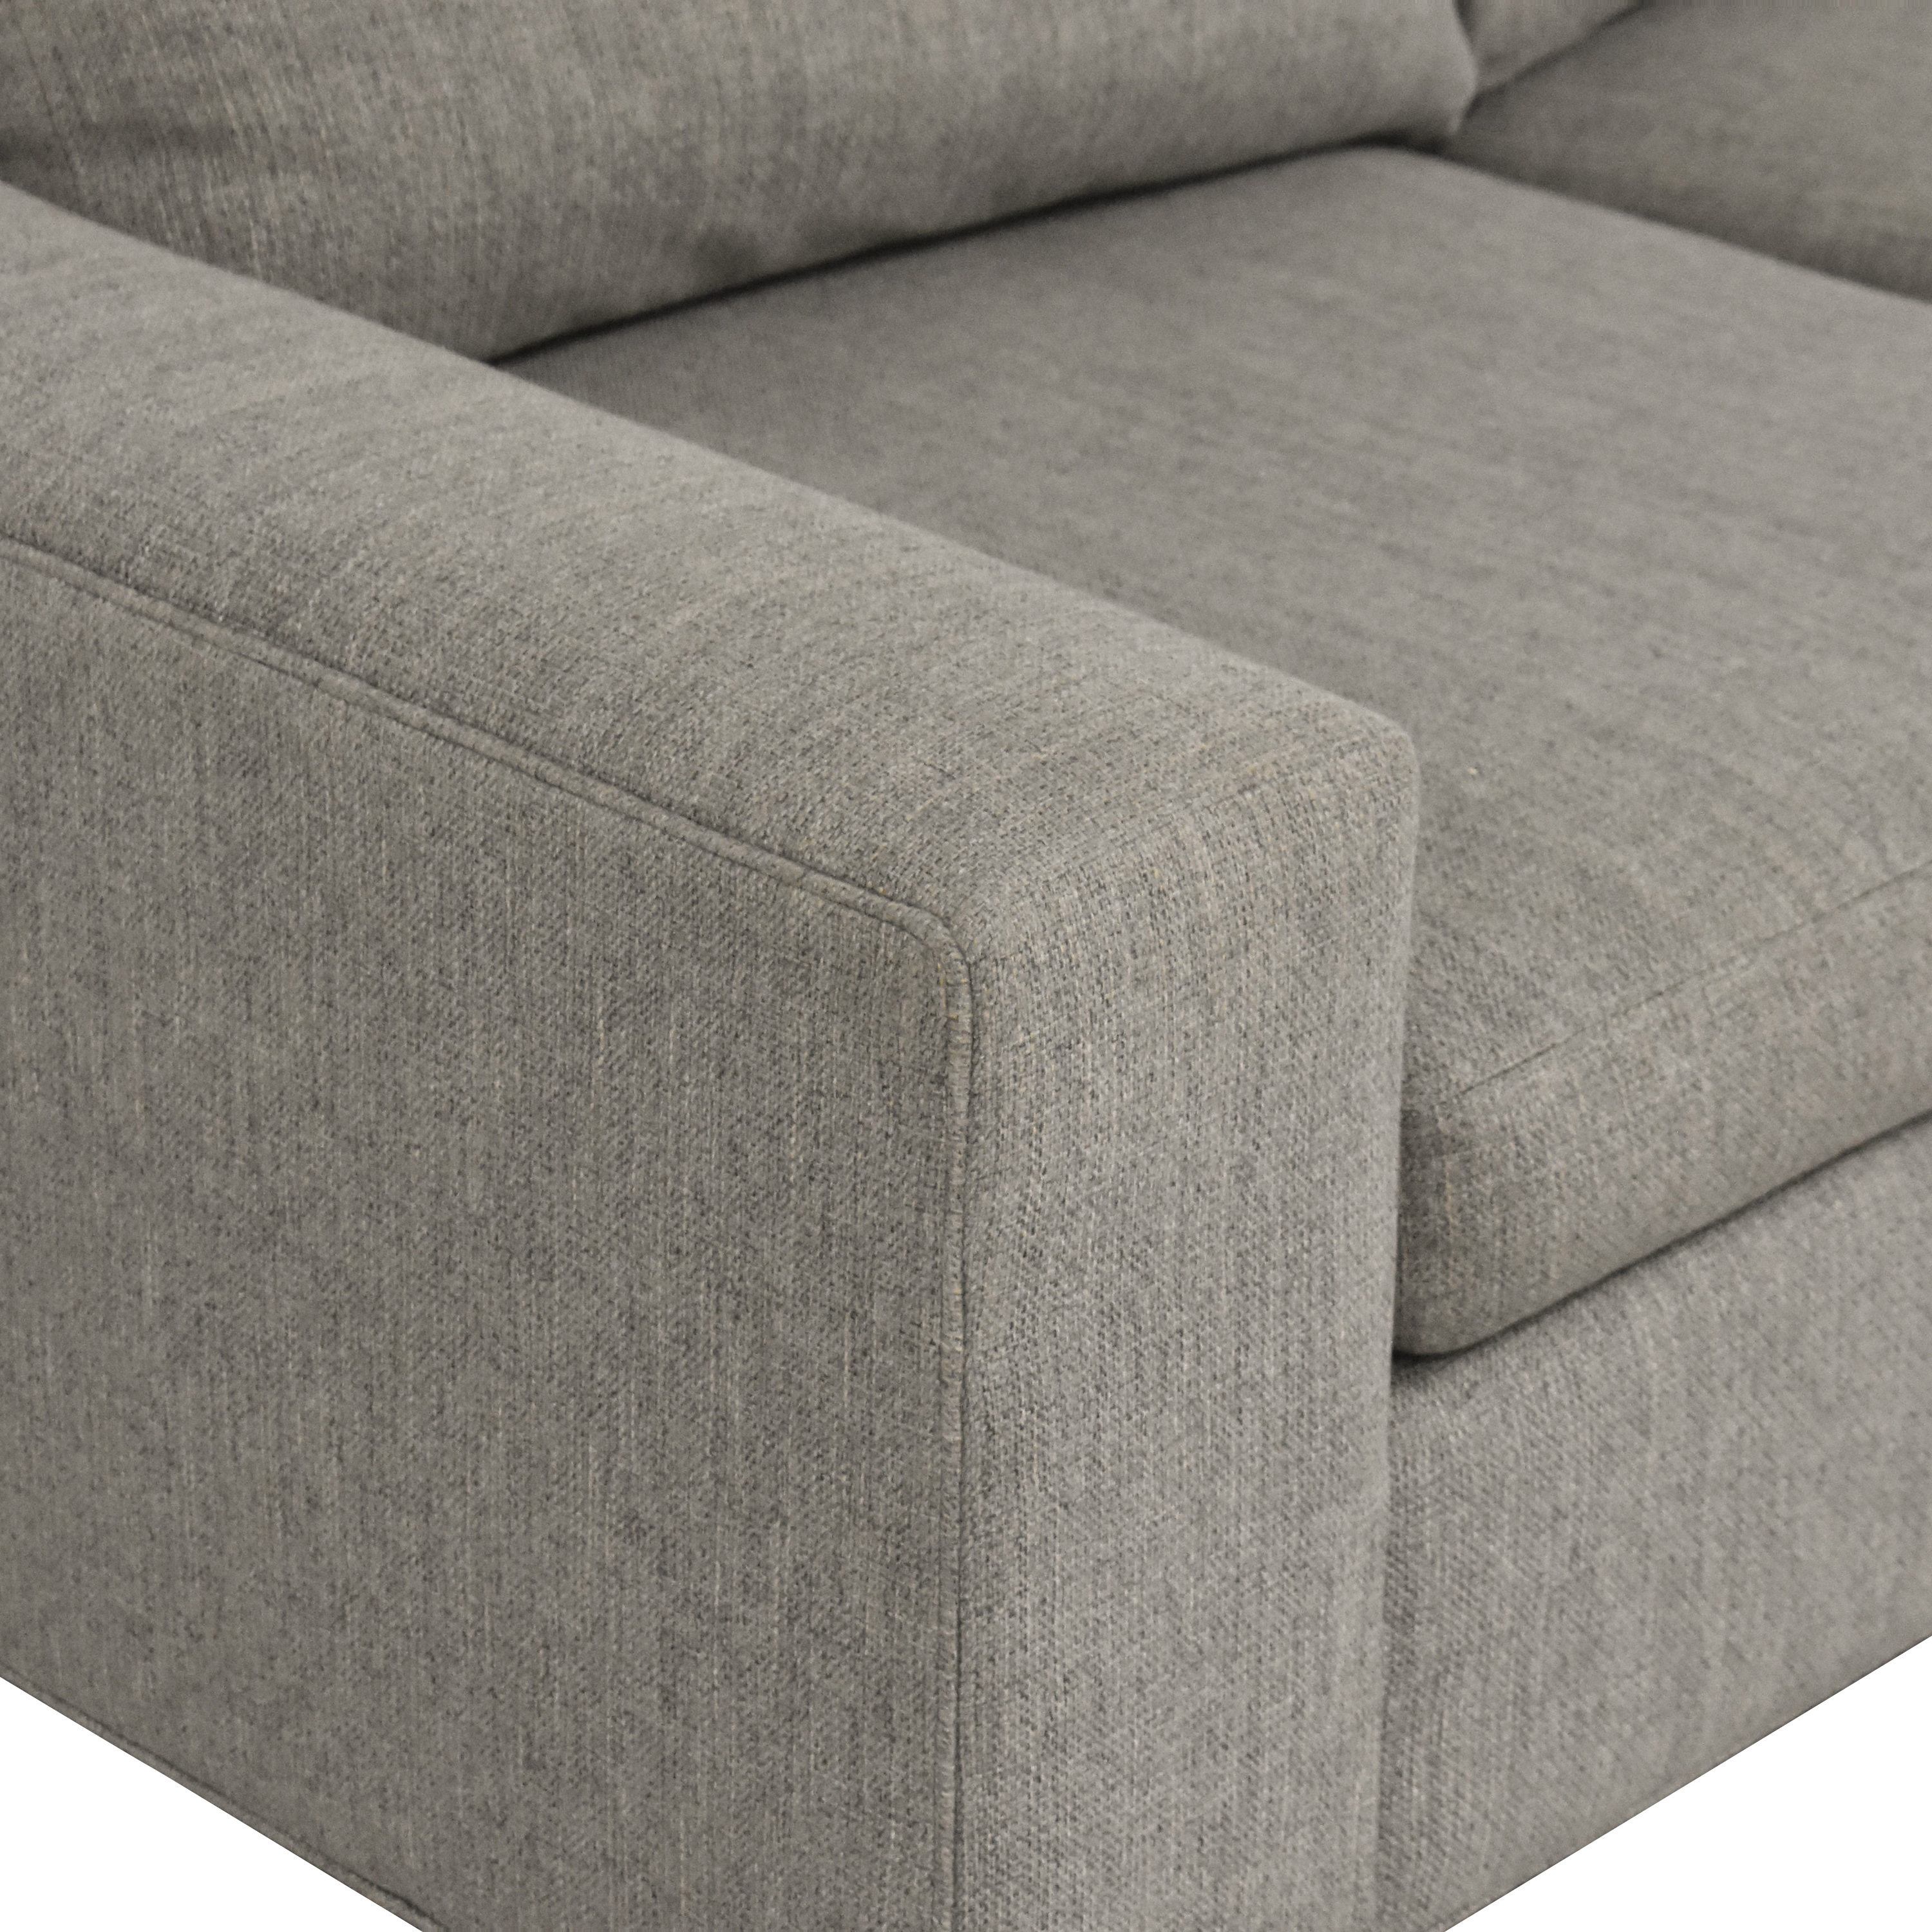 Crate & Barrel Crate & Barrel Two Cushion Sofa for sale